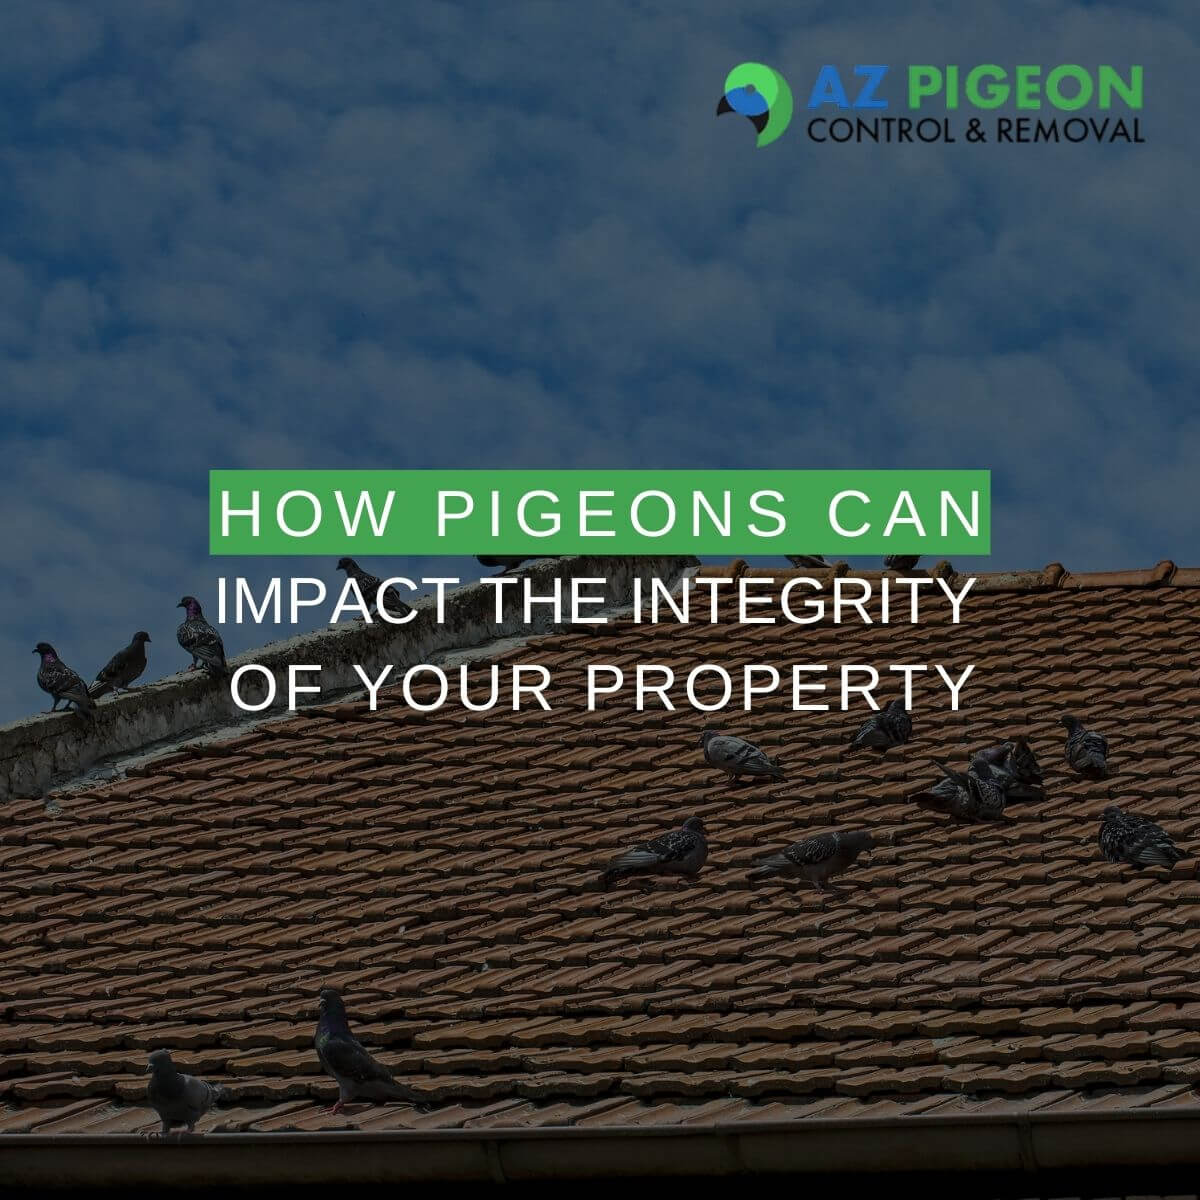 How Pigeons Can Impact the Integrity of Your Property